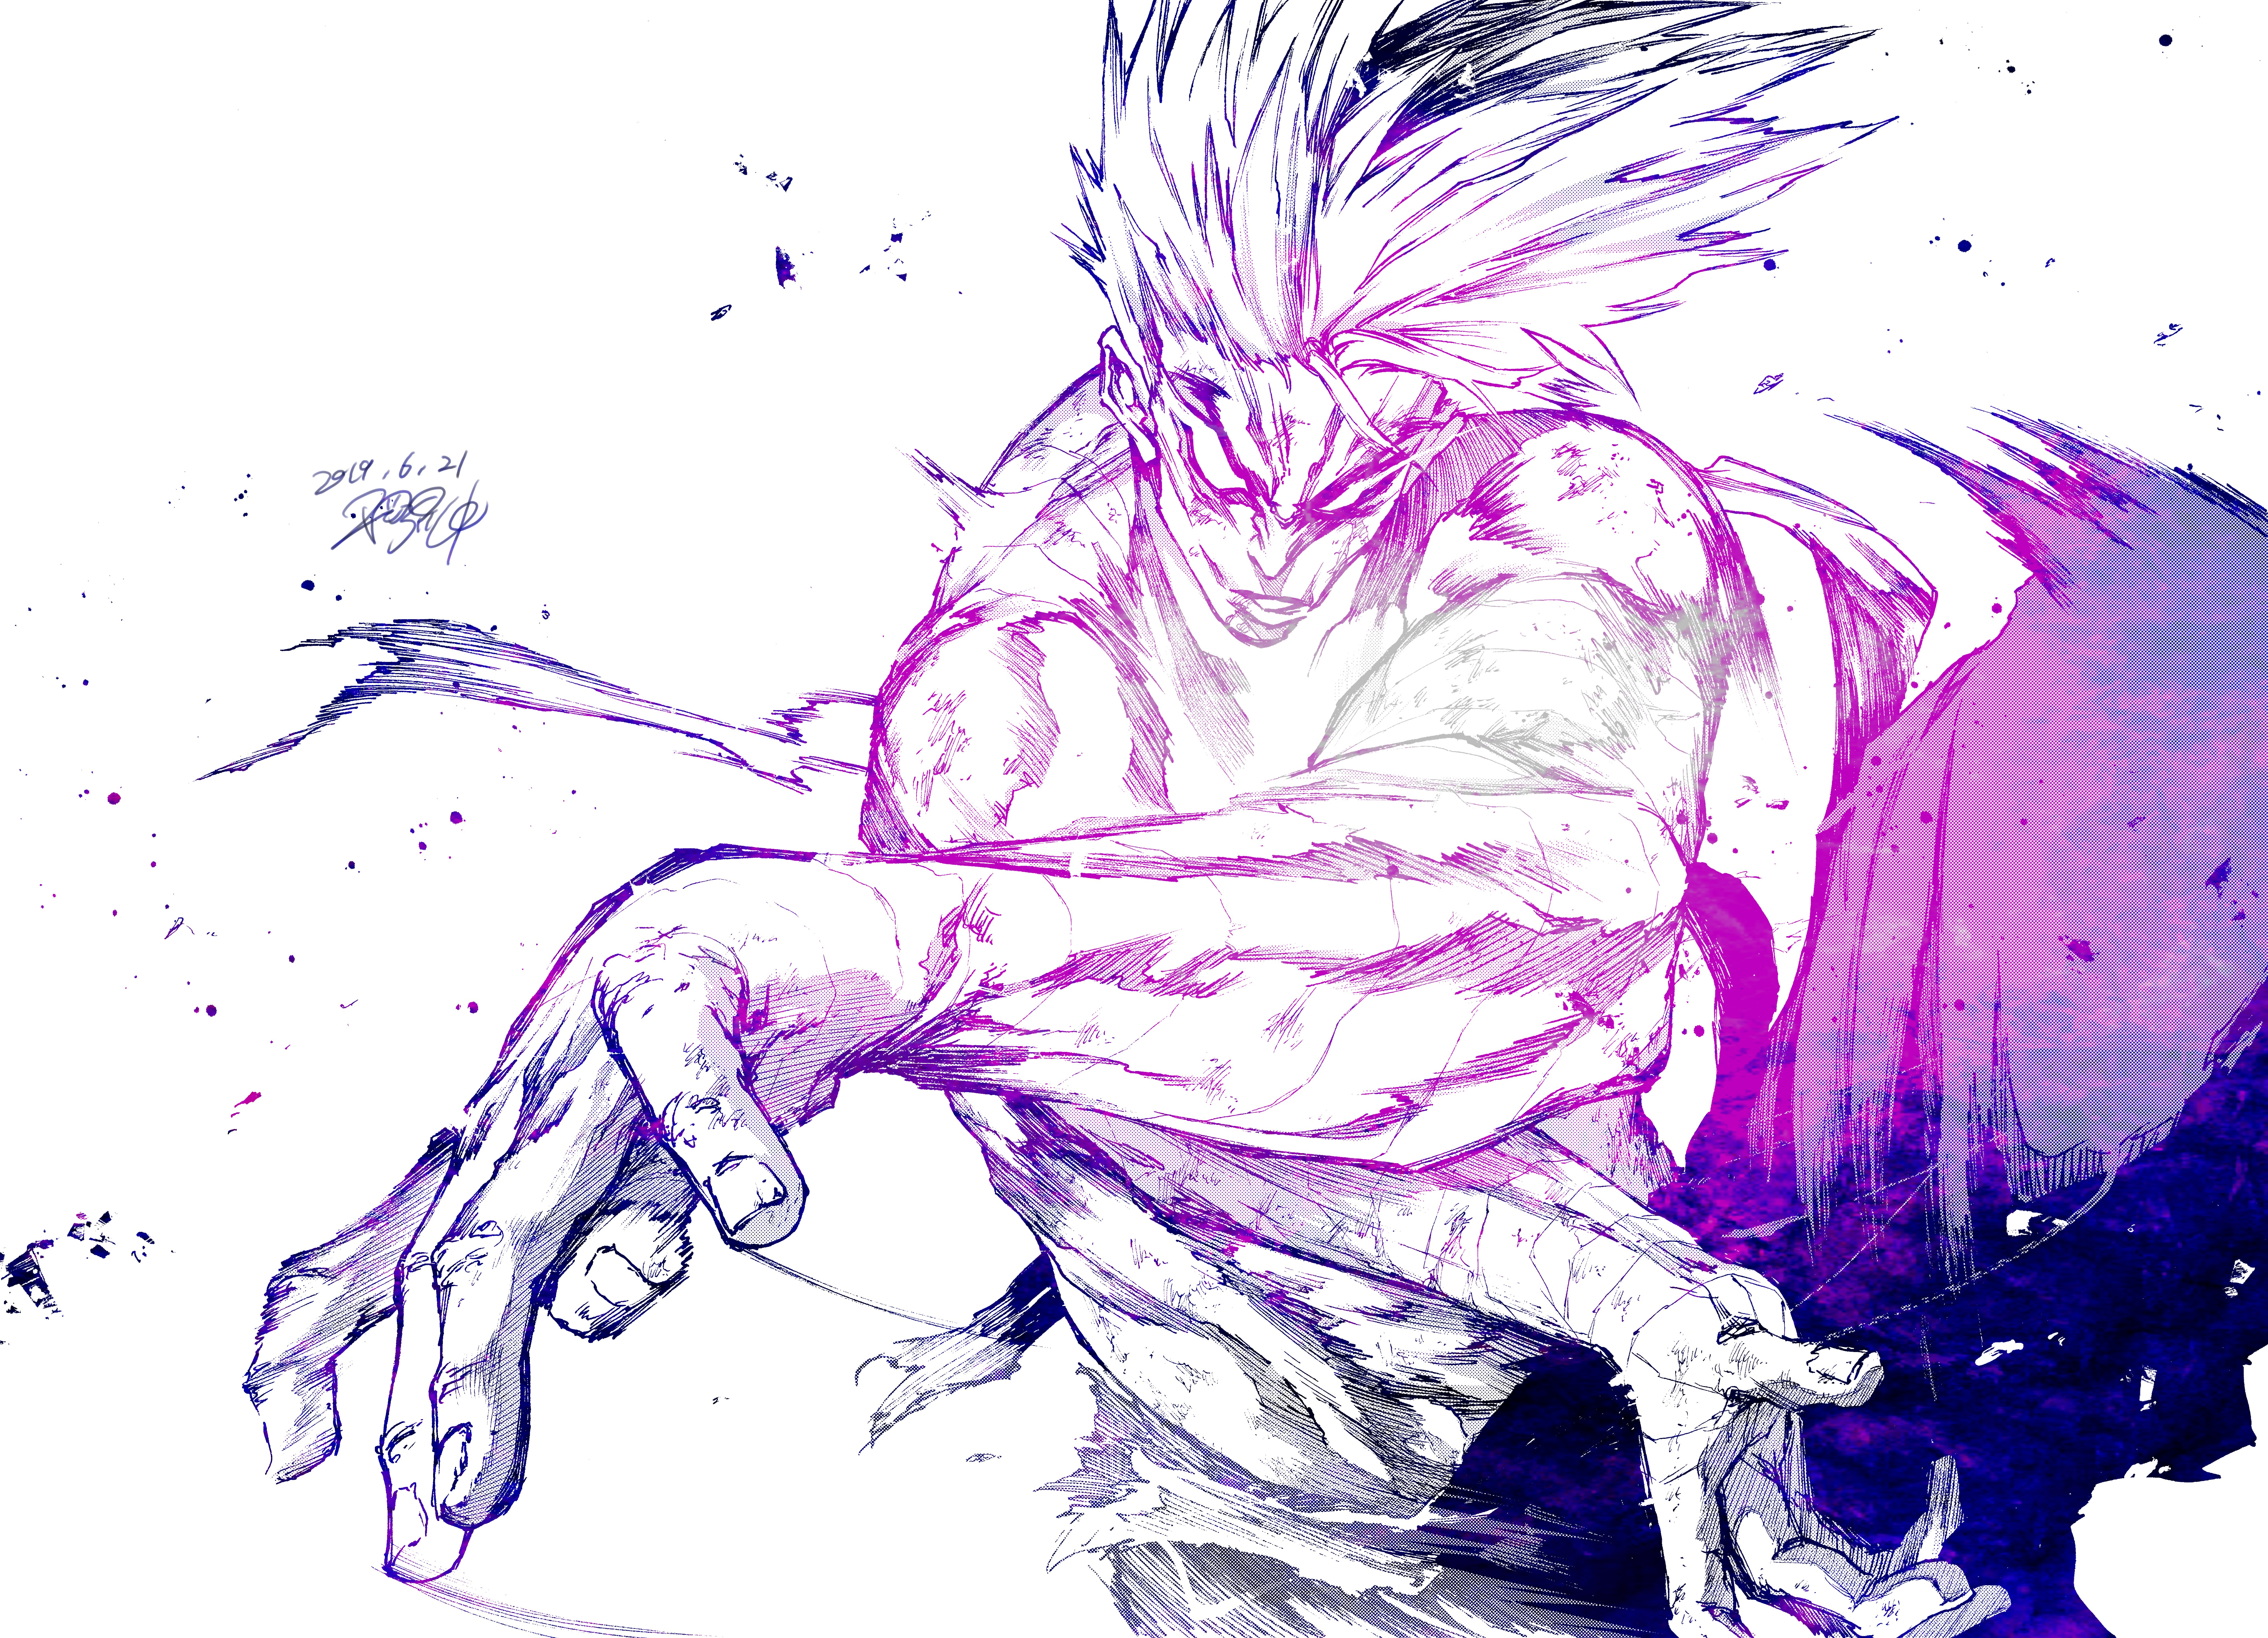 One Punch Man 8k Ultra Hd Wallpaper Background Image 8179x5906